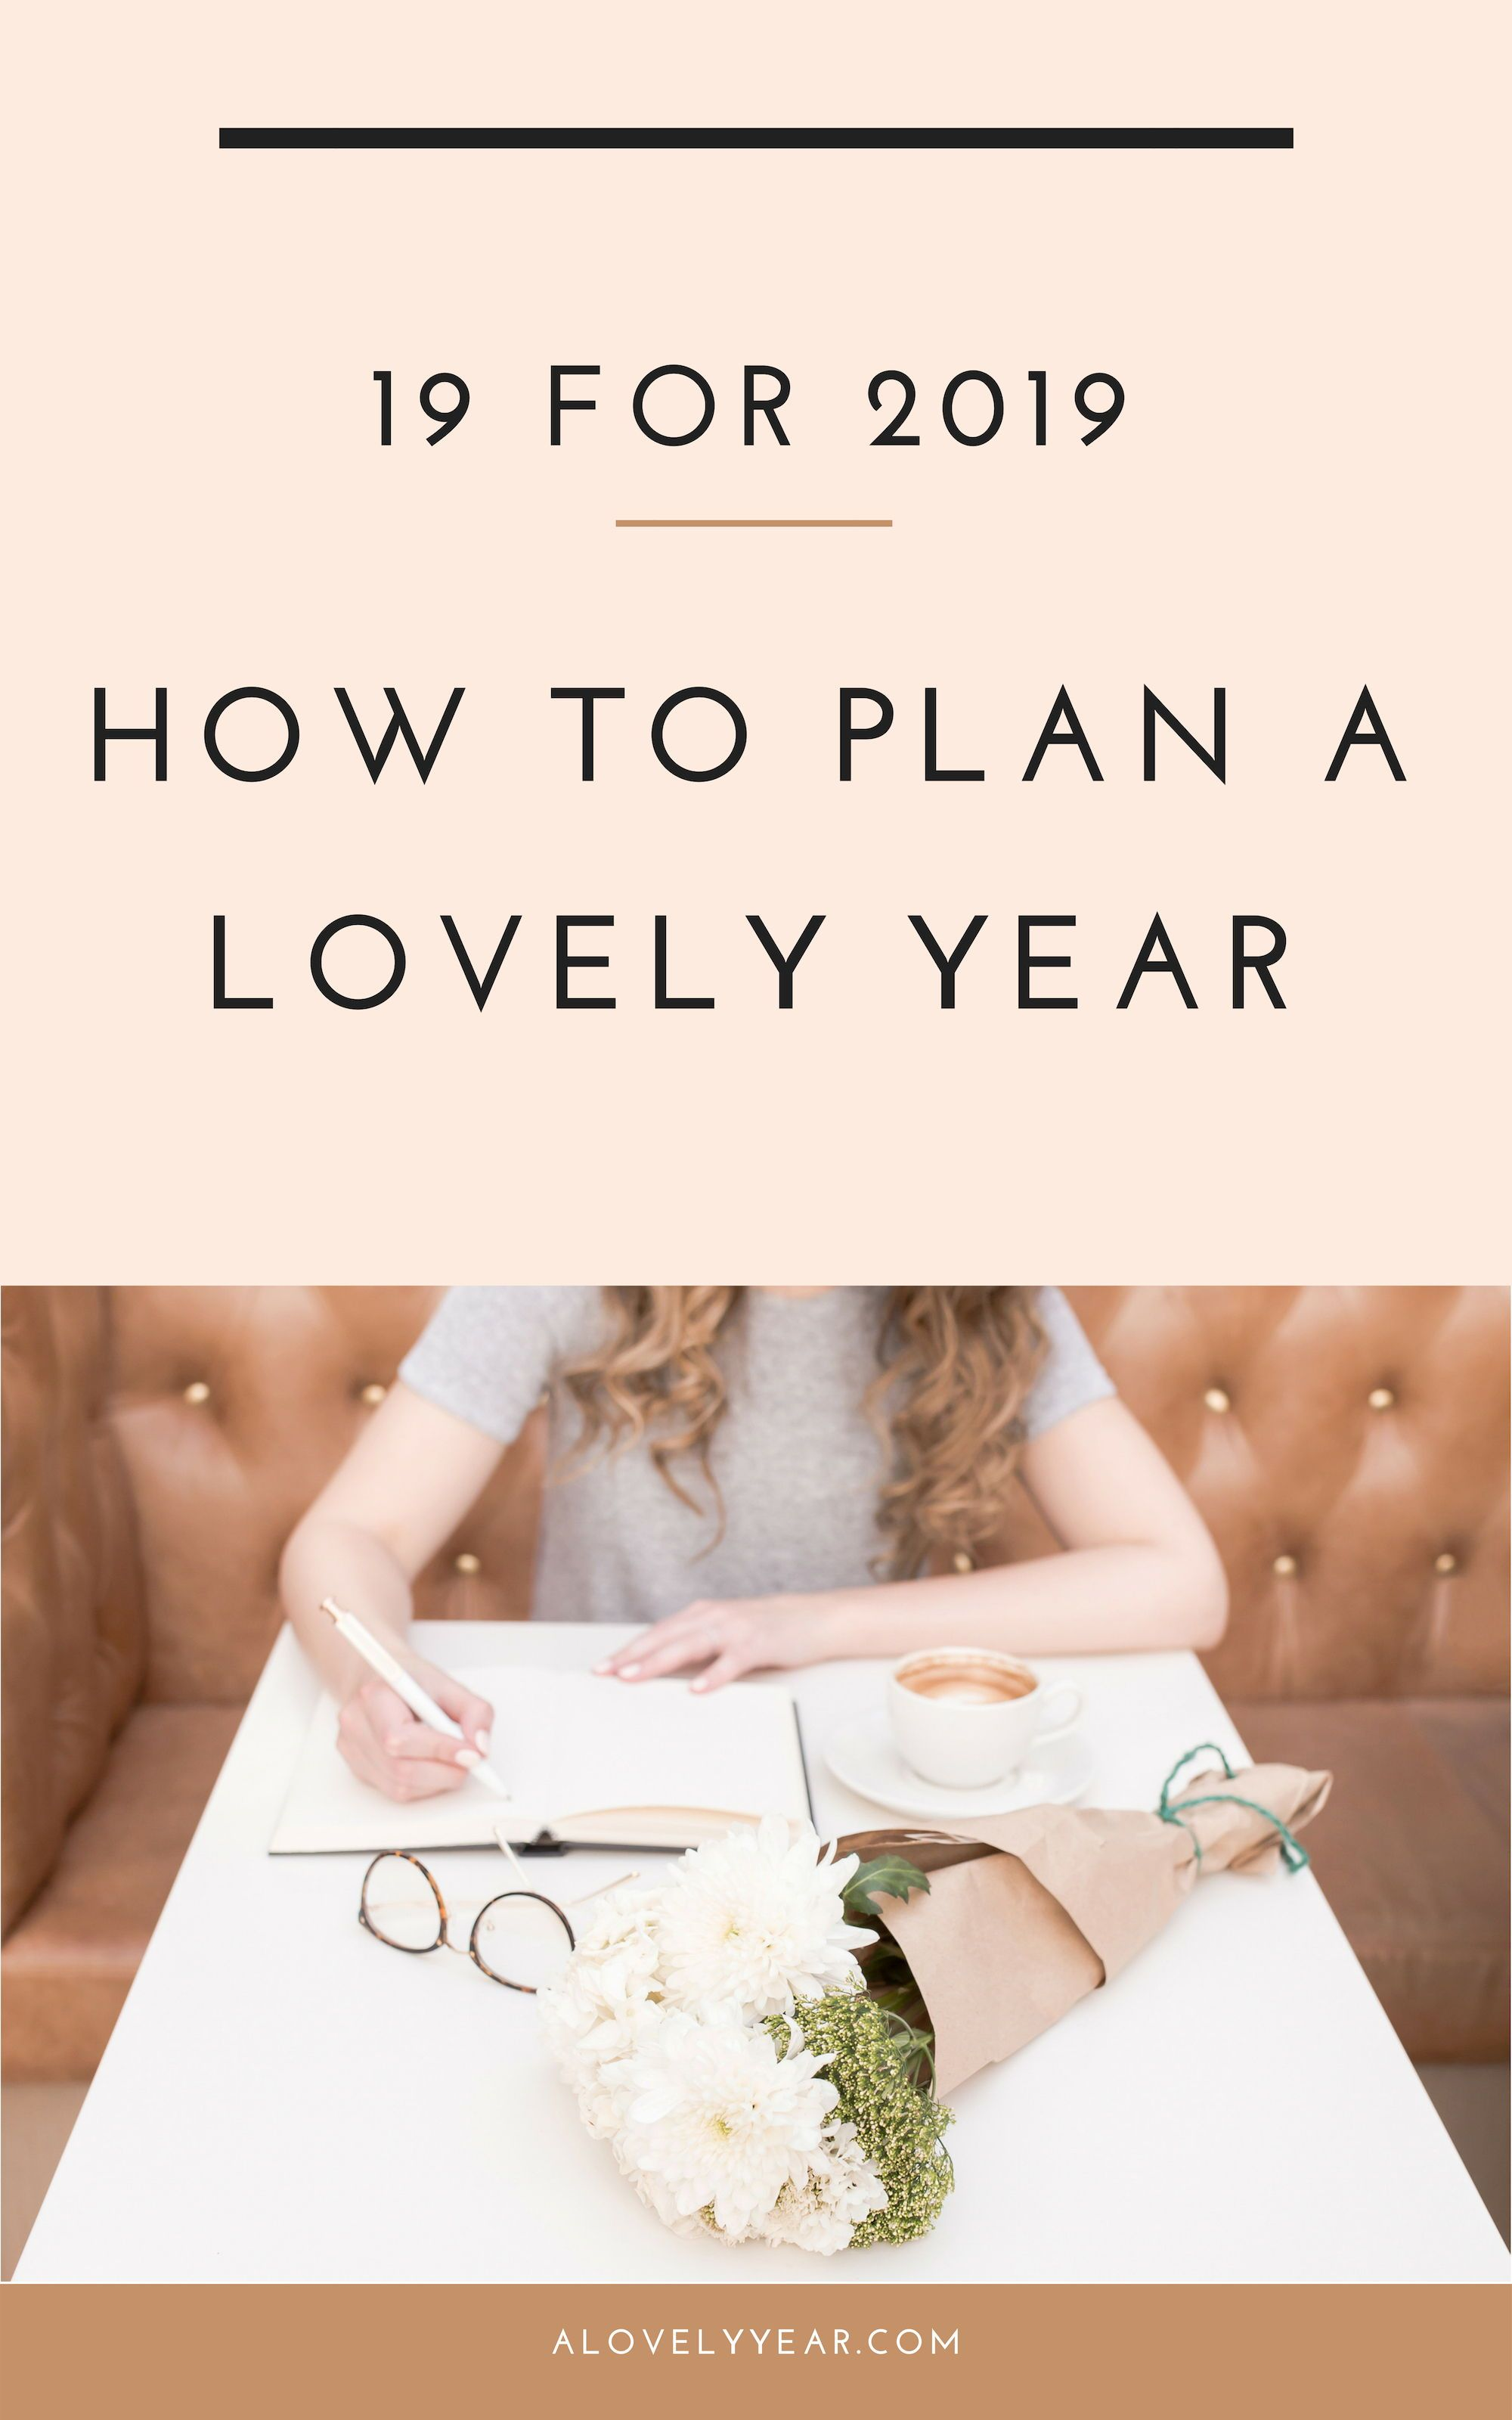 Plan A Lovely Year With 19 Activities For